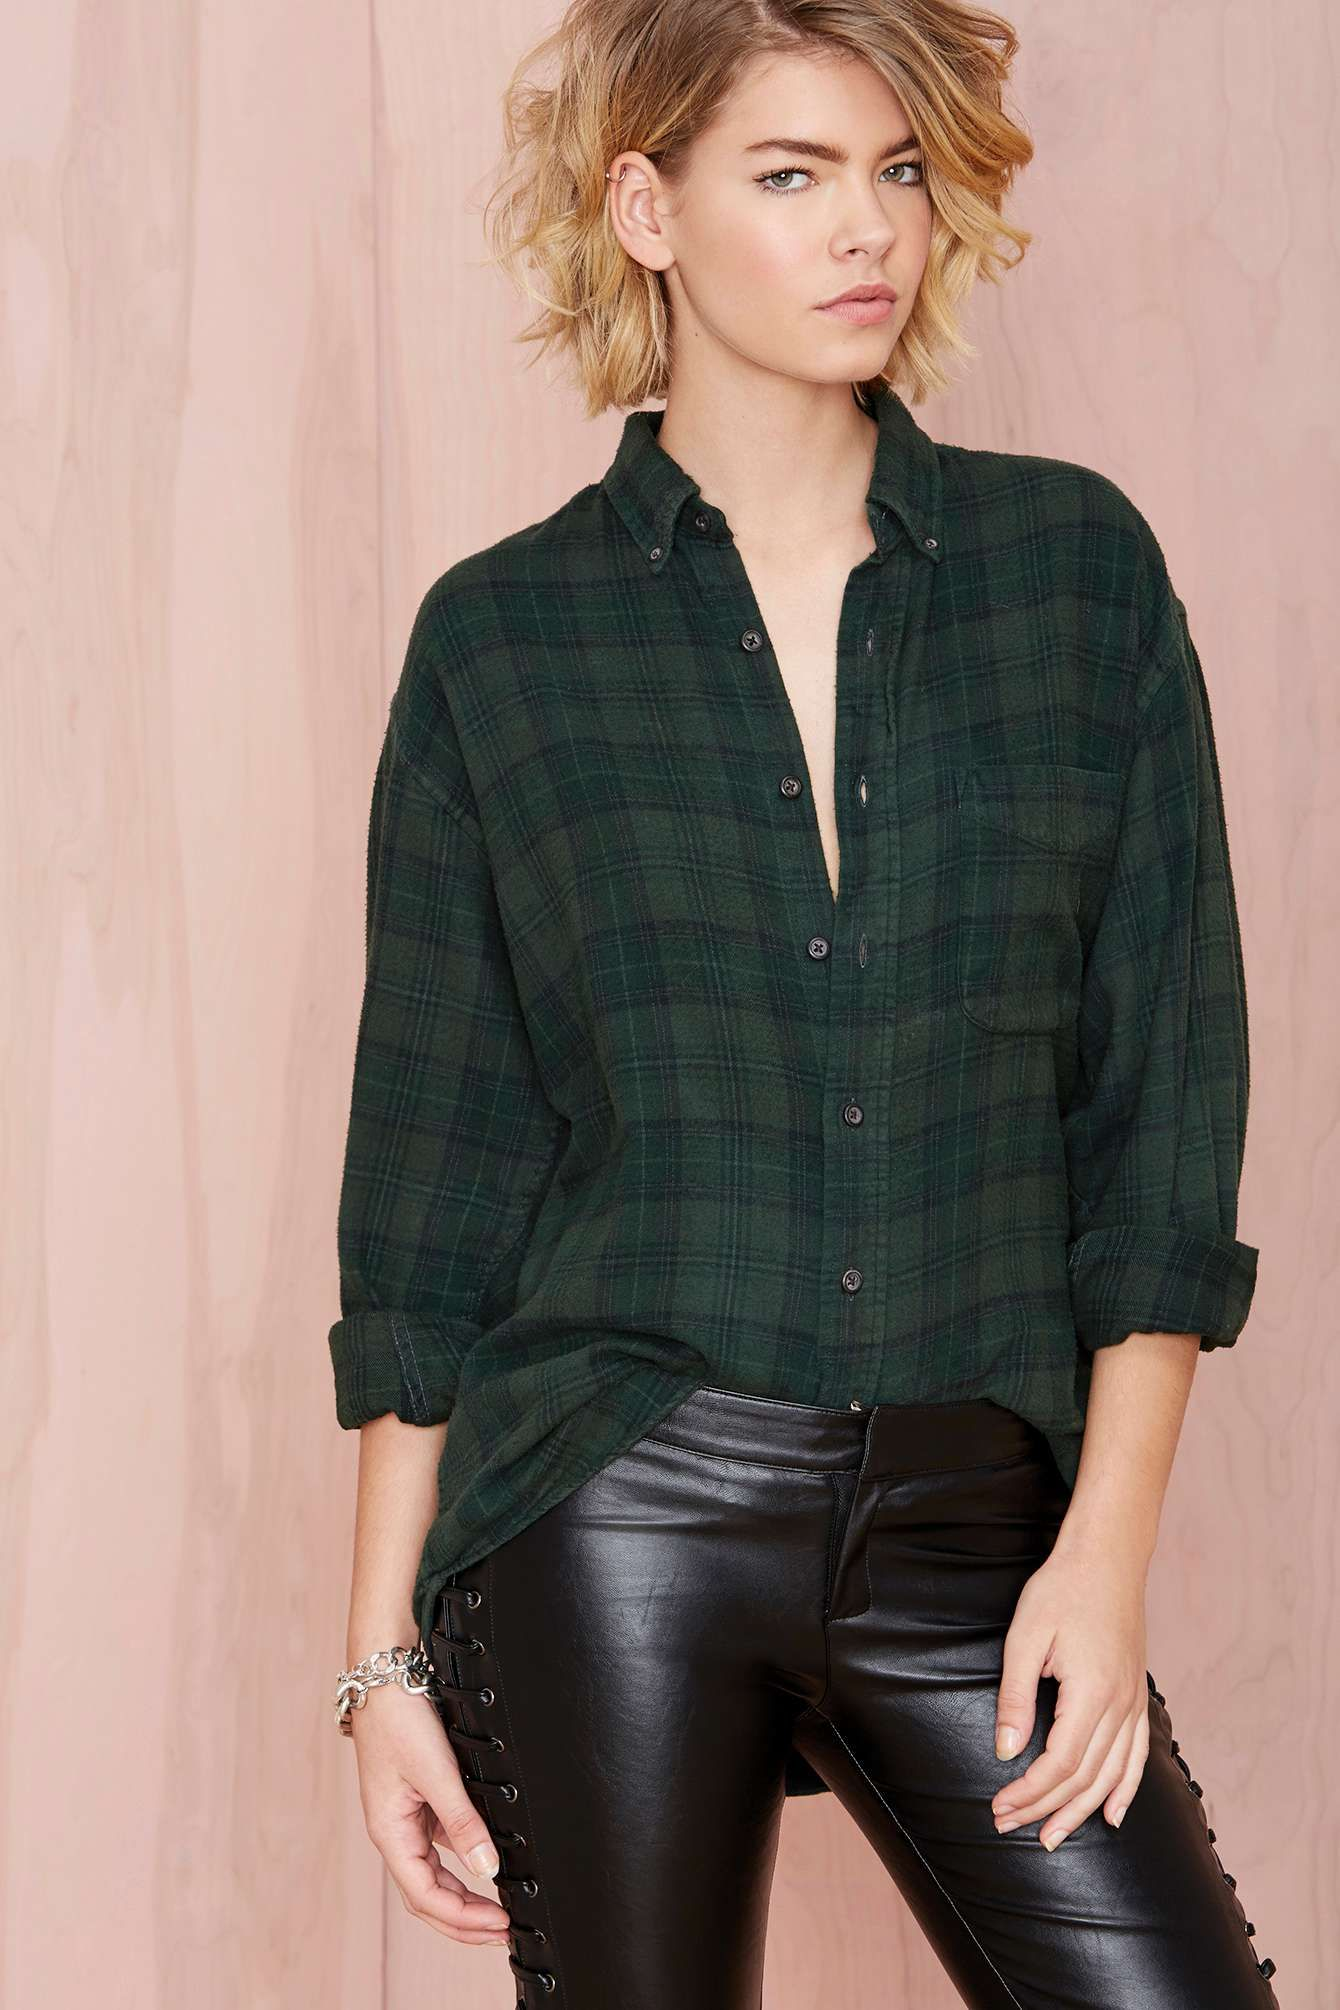 Flannel shirt party  After Party Vintage Tried And True Flannel  Forest Green  Shop